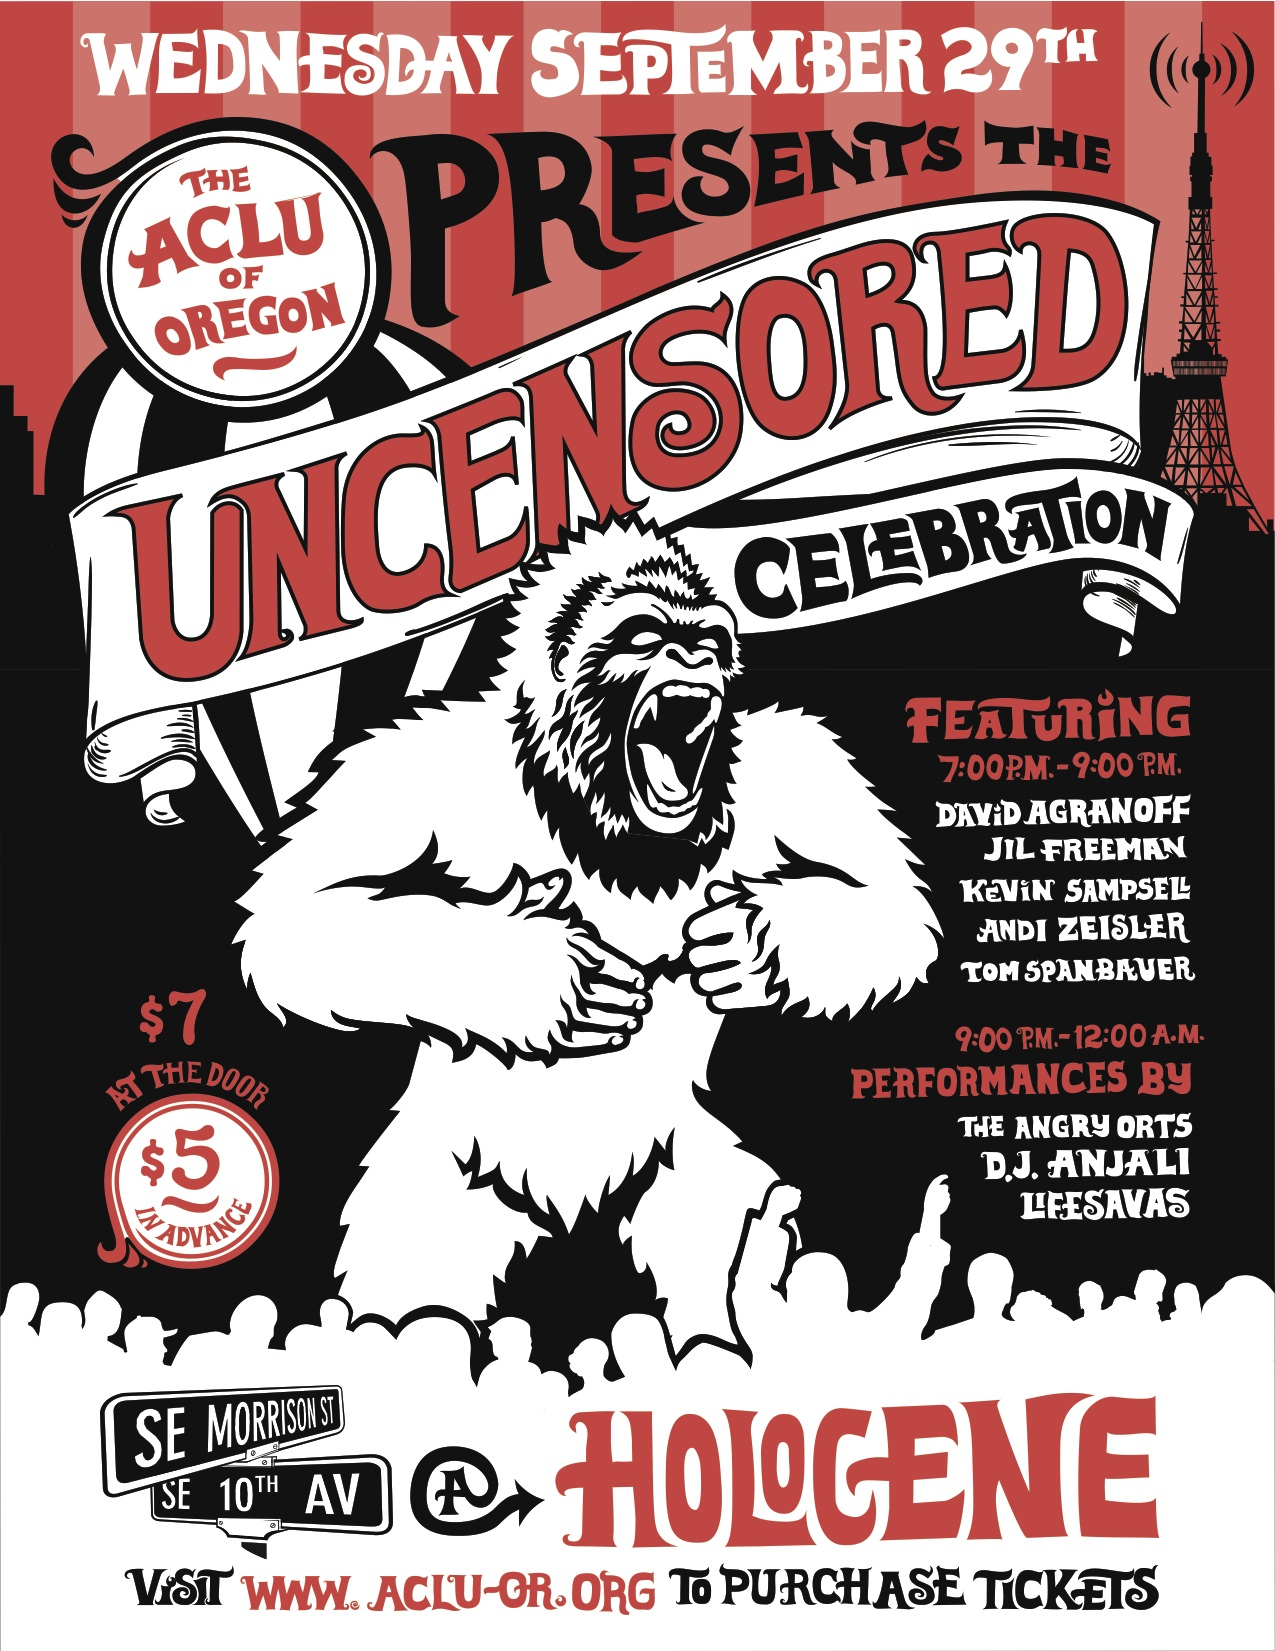 Uncensored Celebration 2010